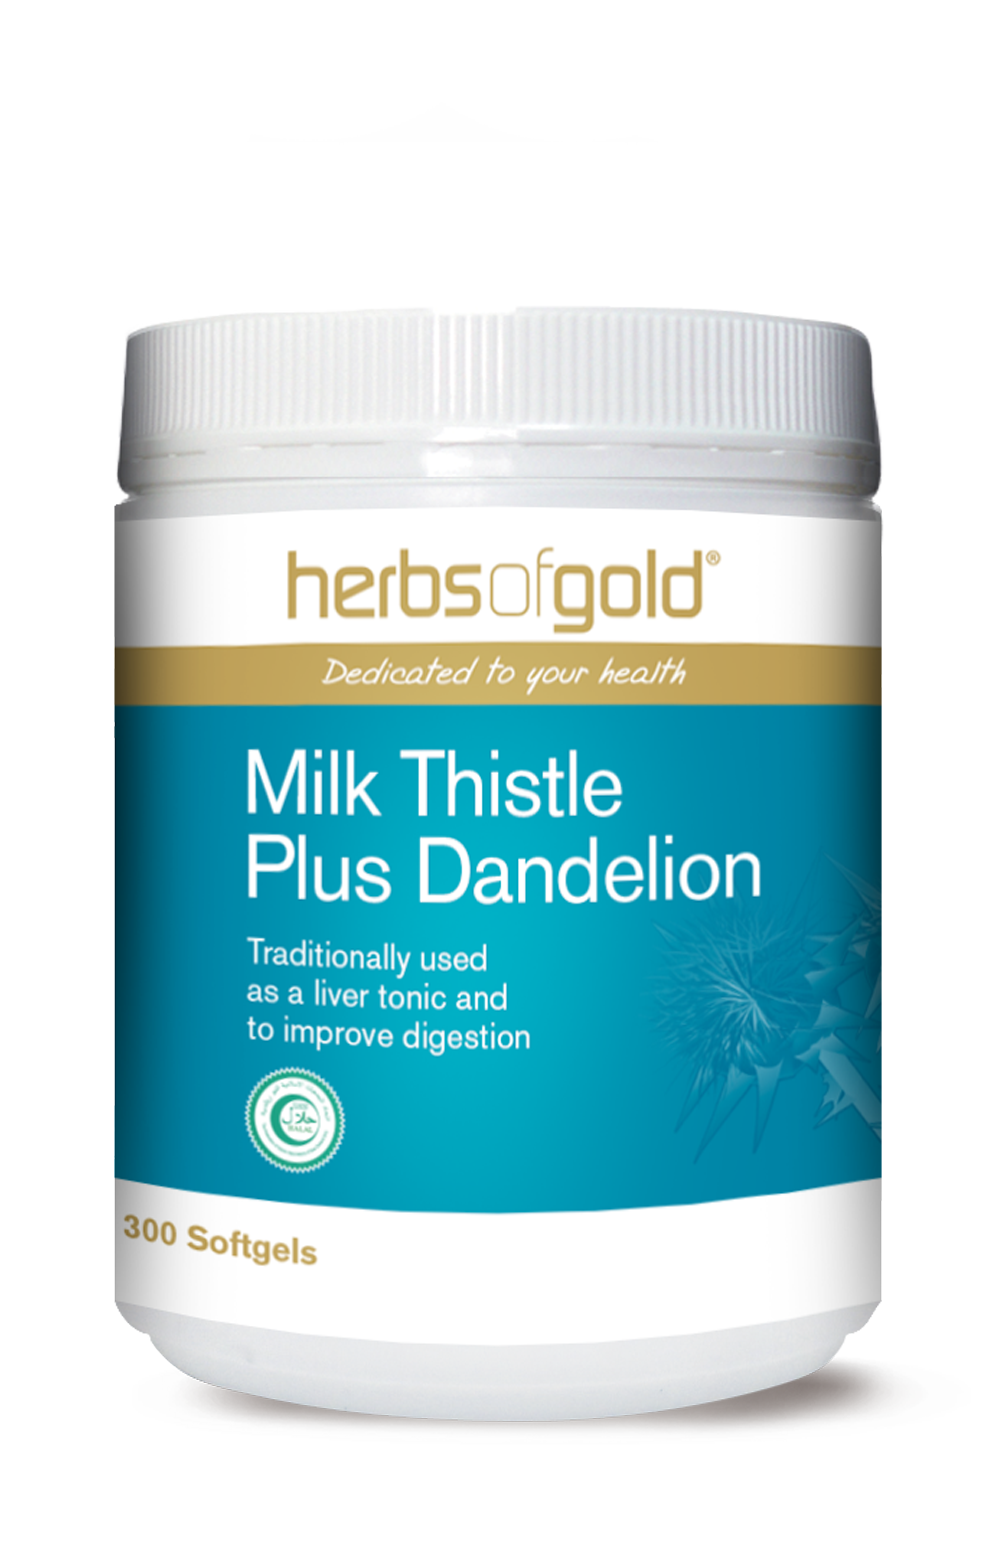 Milk Thistle Plus Dandelion